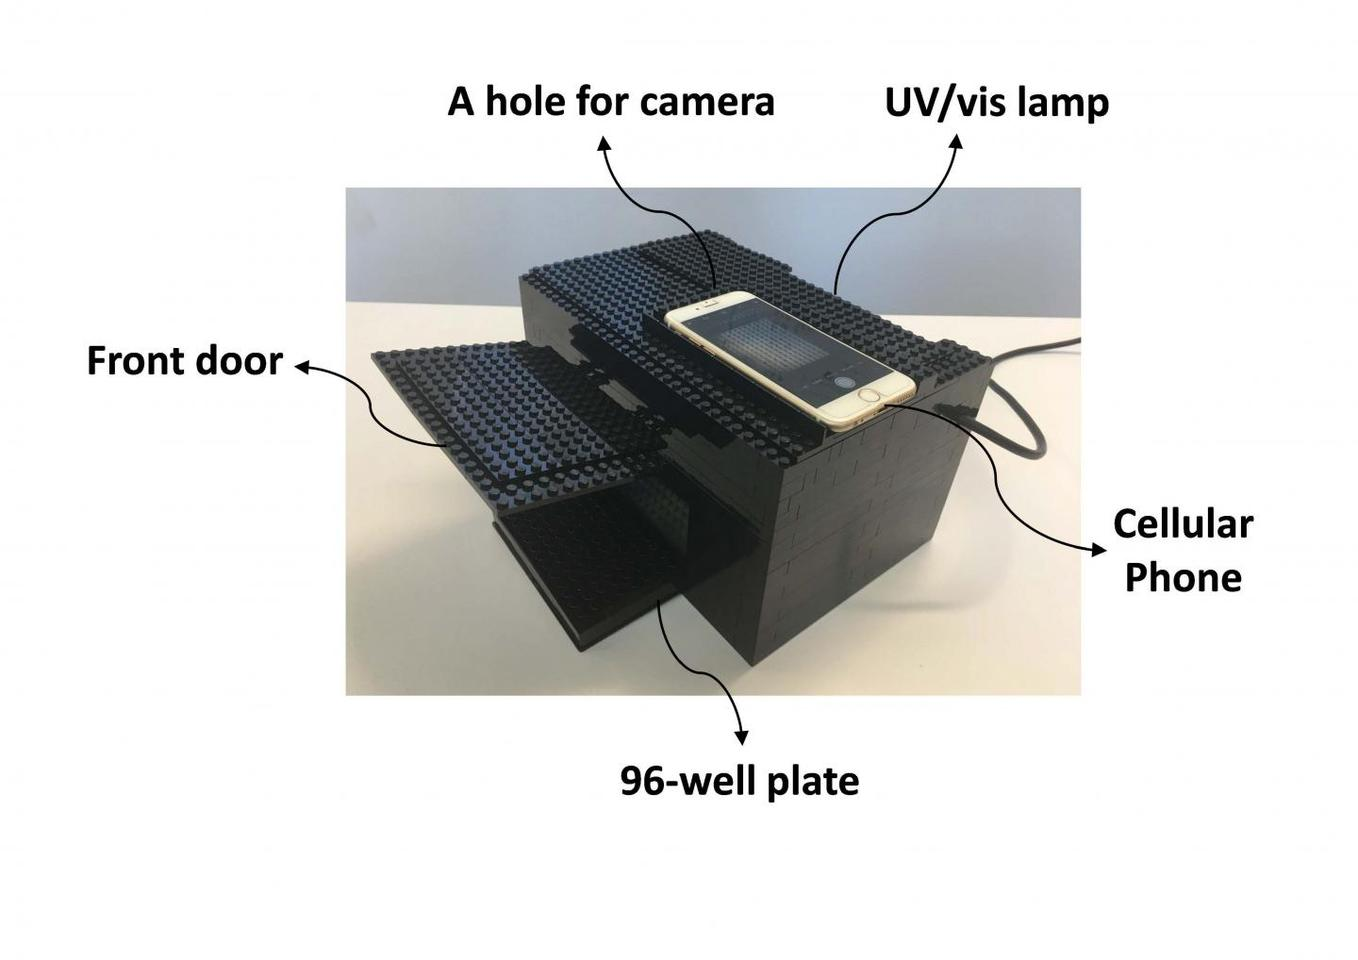 A homemade Lego dark-box for imaging using a cell phone. The Lego box is equipped with a UV/vis lamp, a hole for the iPhone camera, and guides for camera and plate placement.